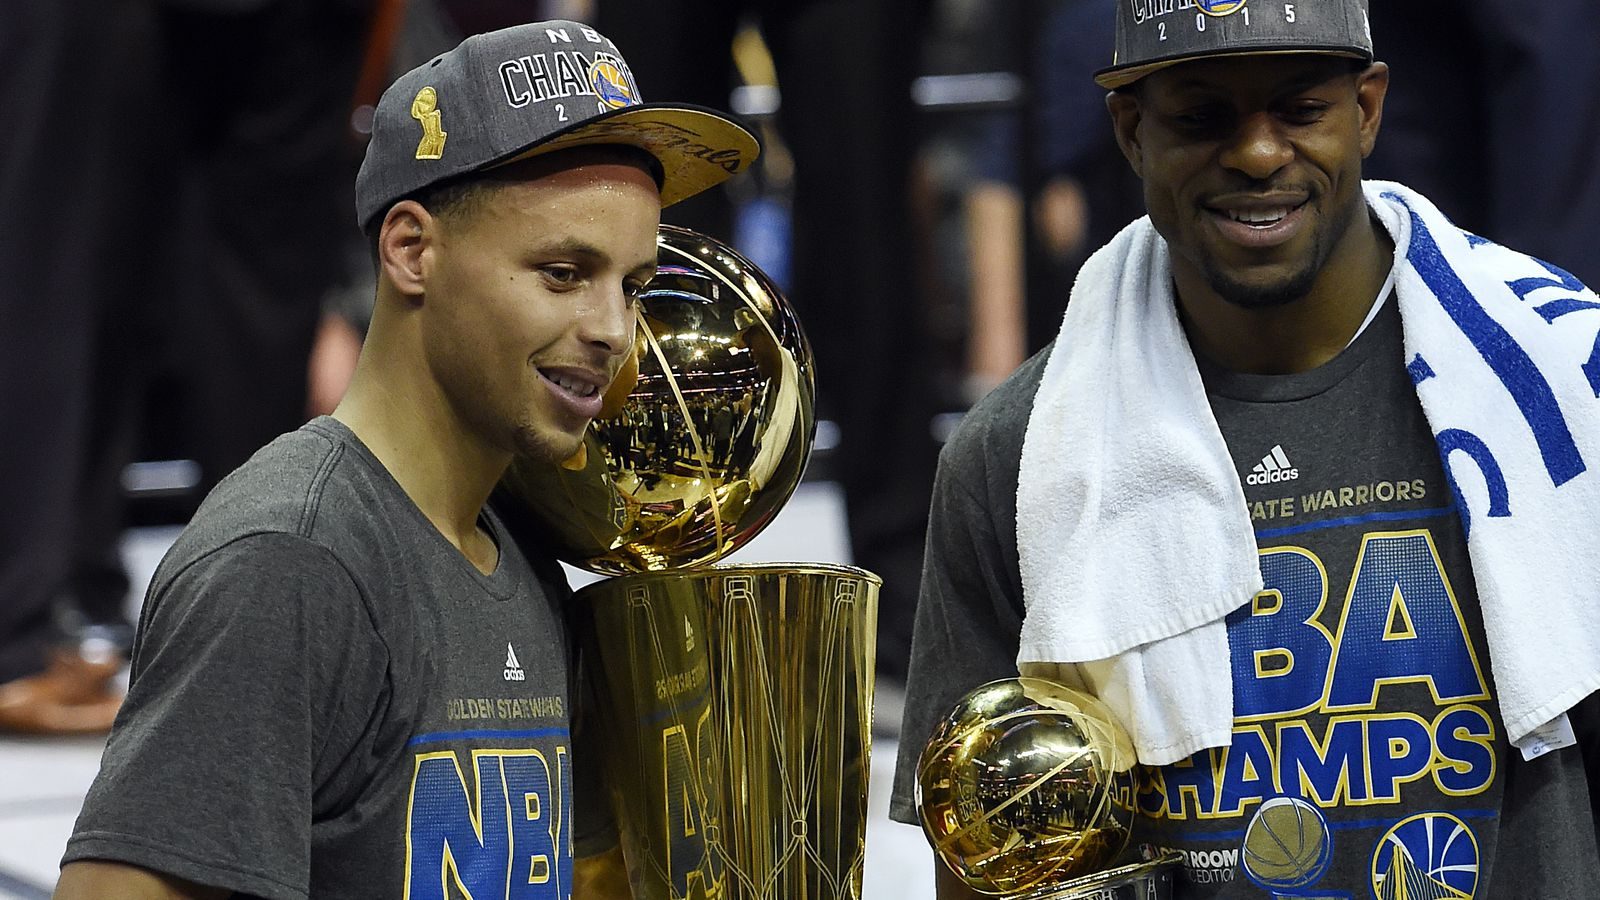 A Spurs fan's reaction to the Warriors' championship - Pounding The Rock